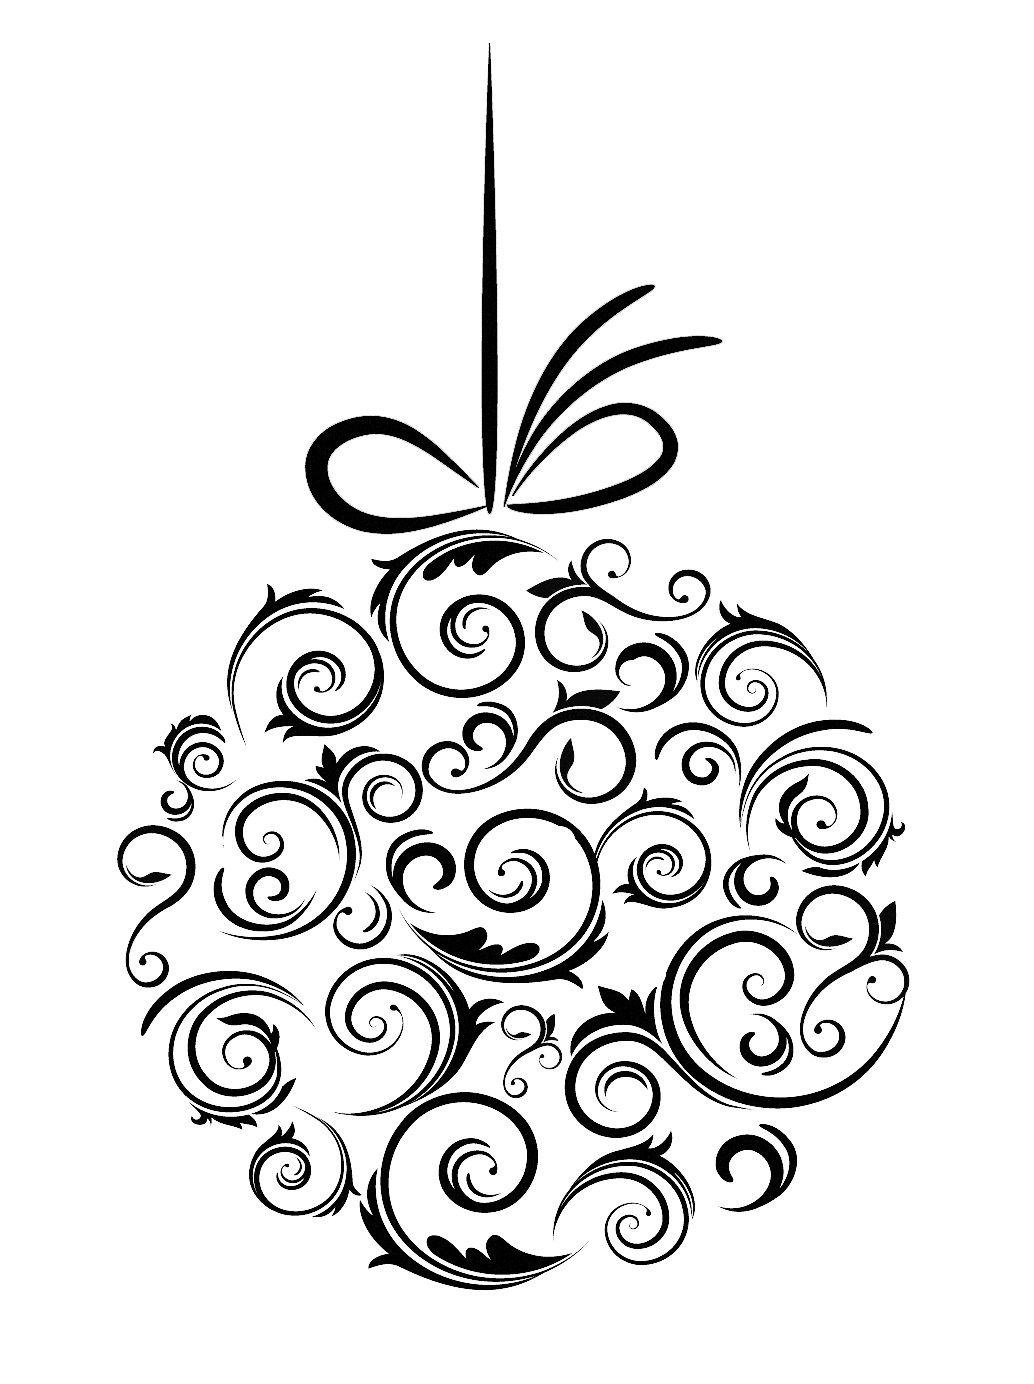 1034x1384 Christmas Ornaments White Christmas Ornaments Black And White